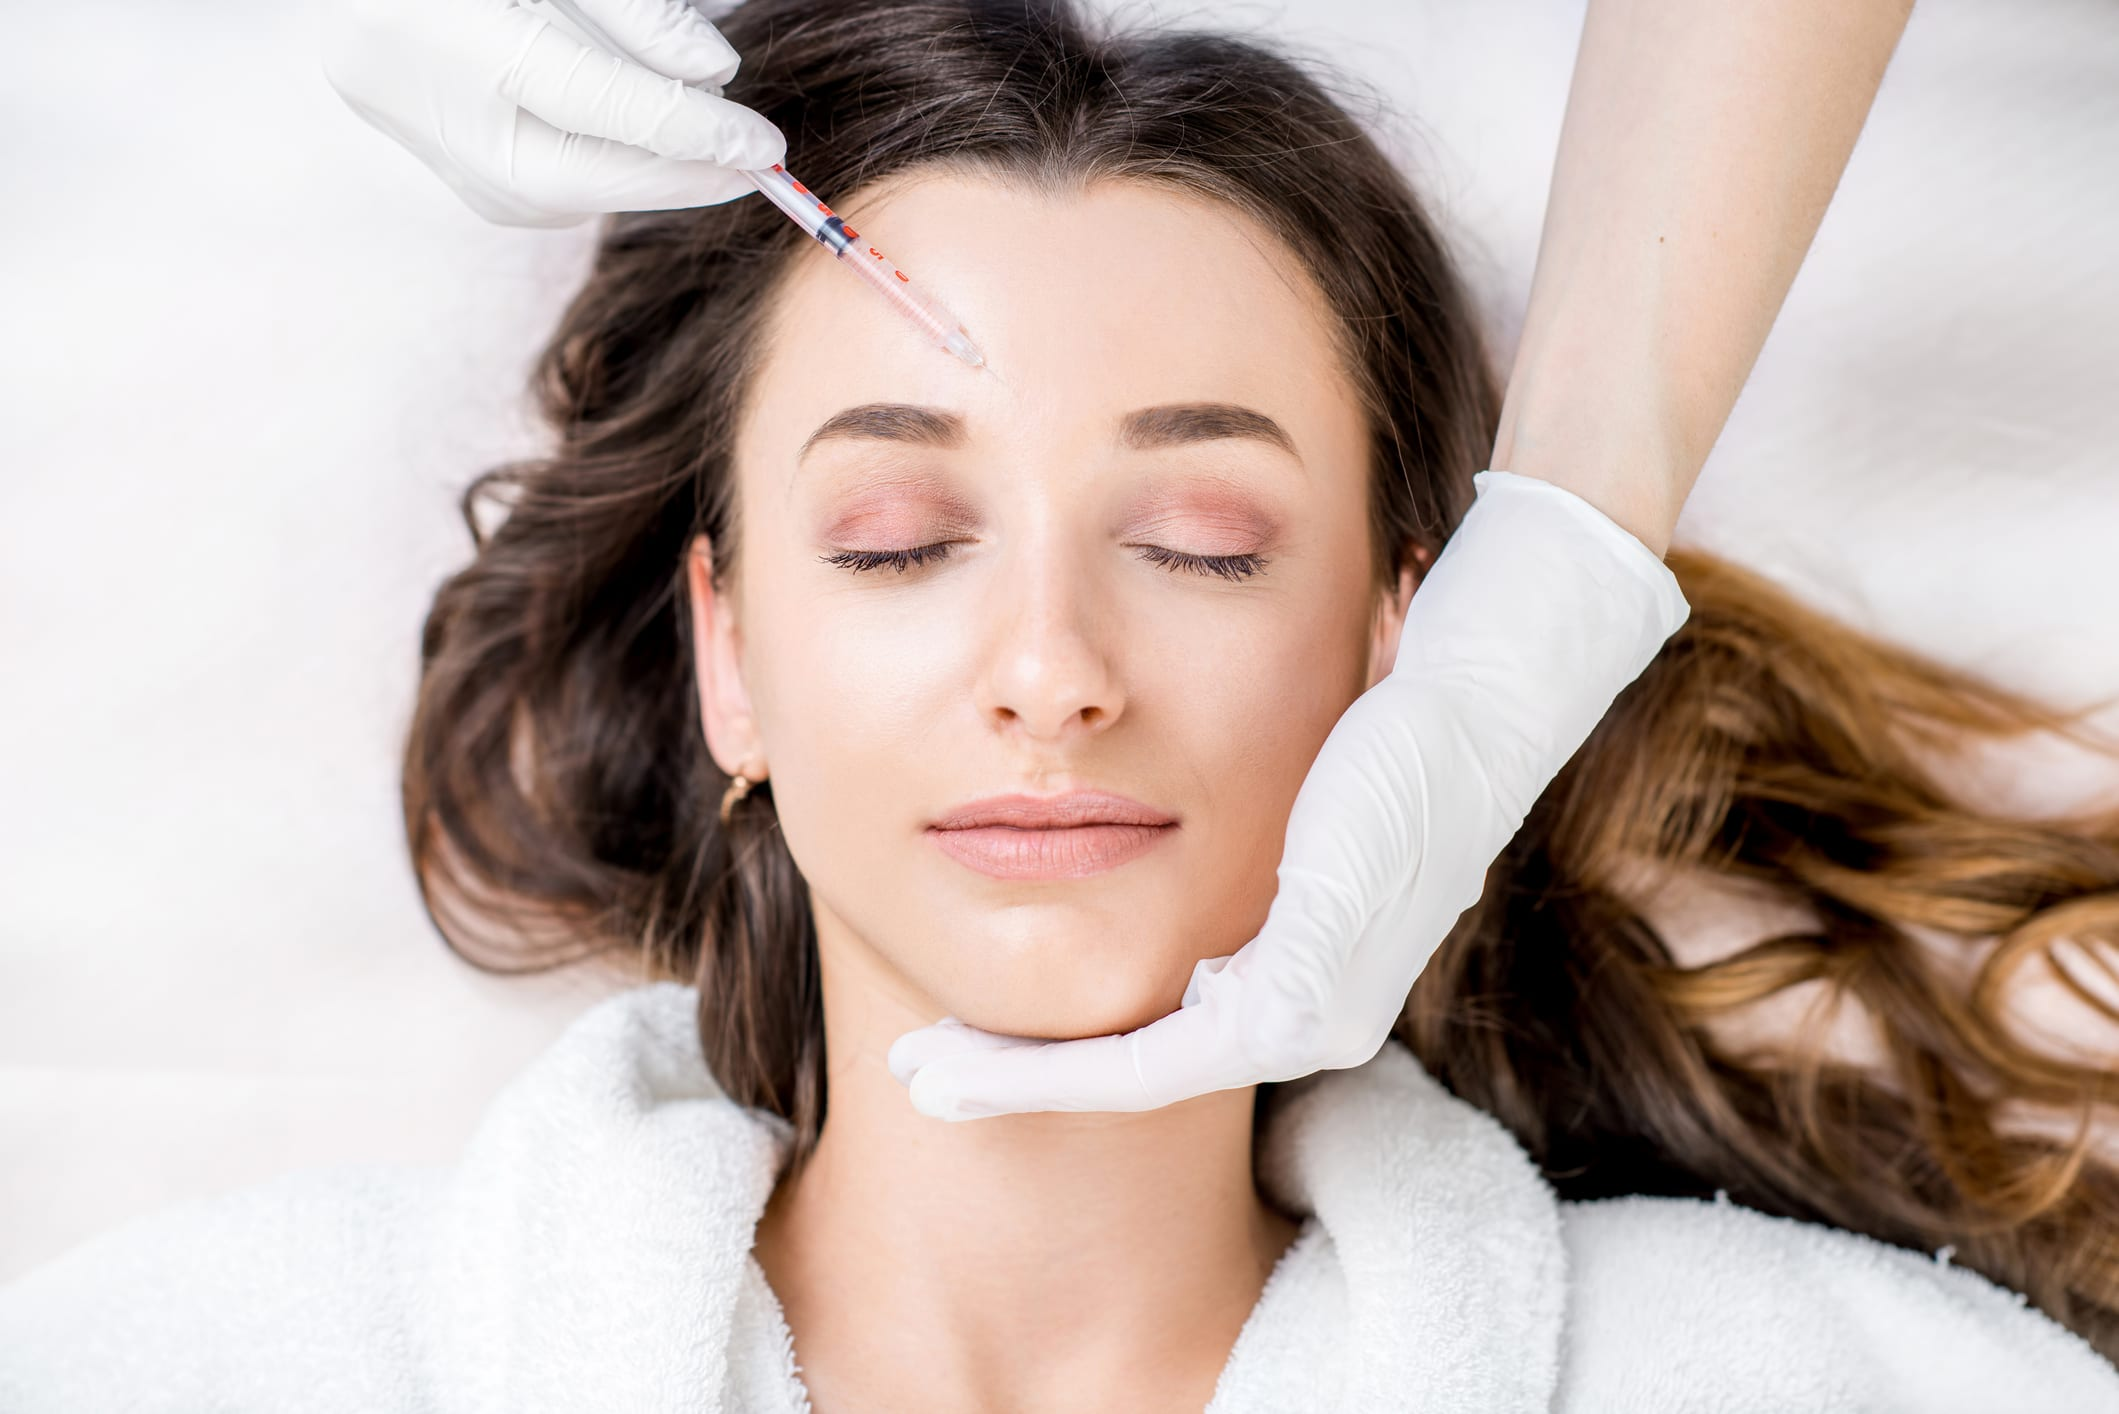 Woman receiving an anti-wrinkle injectioninjection